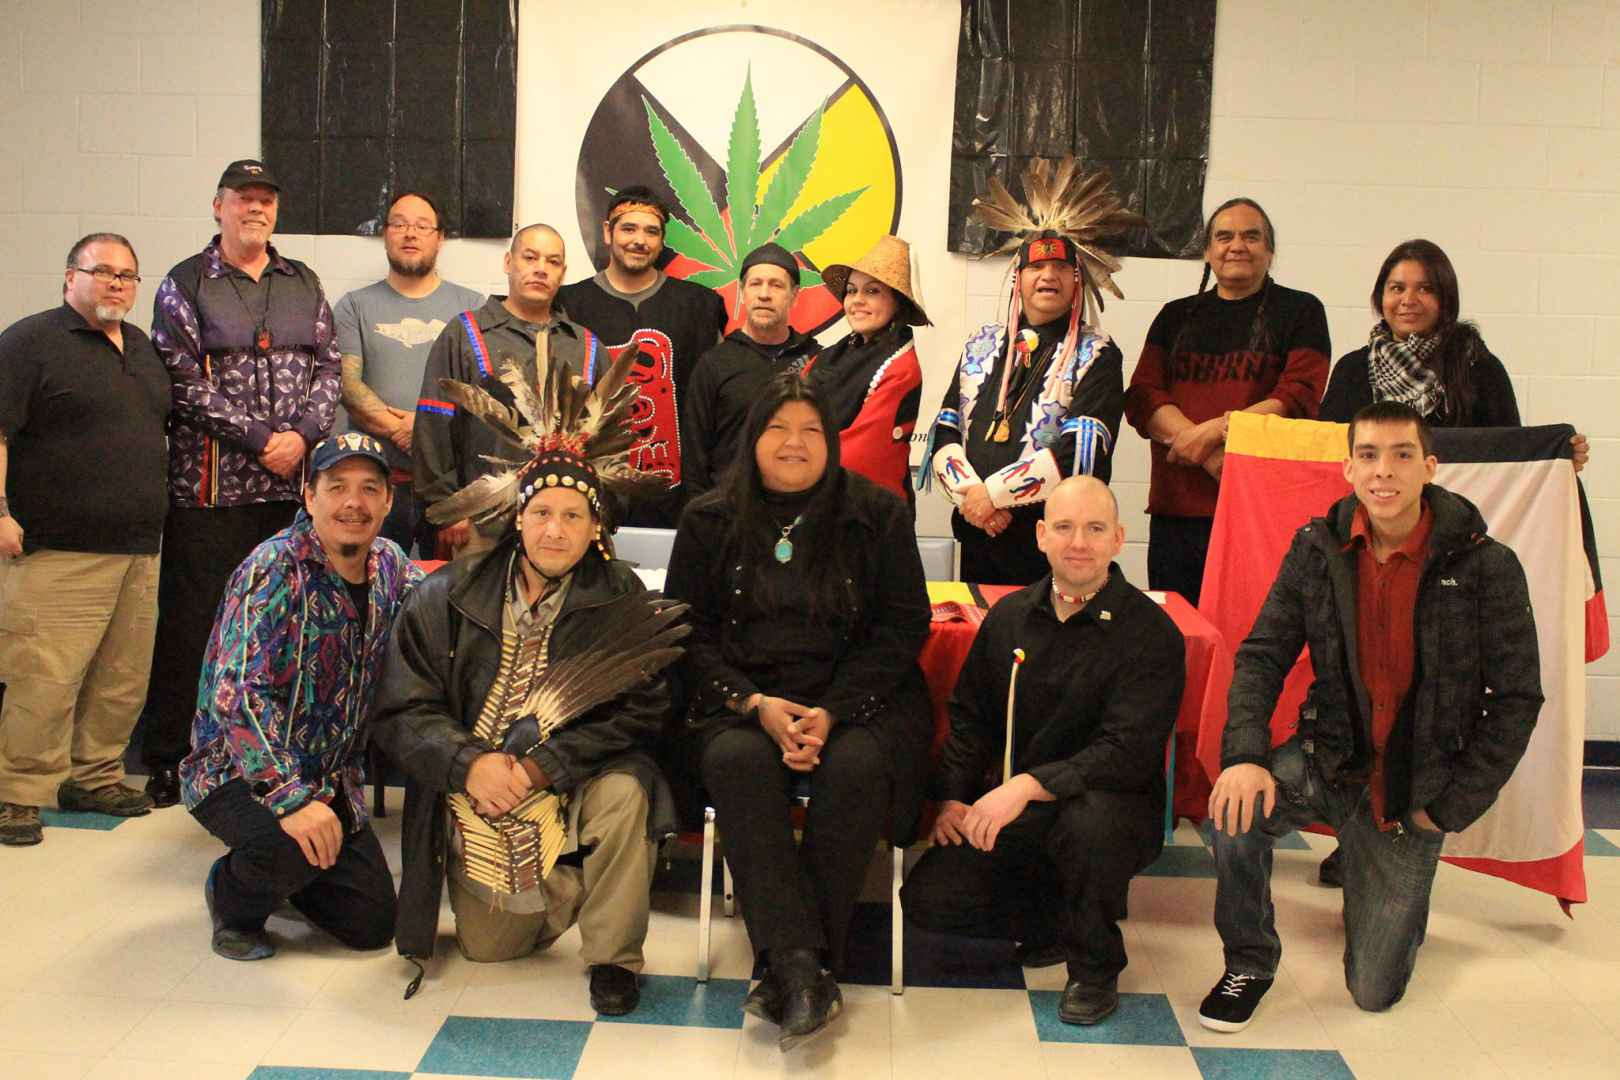 A number of Kanien'kehá:ka representatives, including Kanehsata'kehró:non Clifton Nicholas, were elected to the inaugural board of the National Indigenous Medical Cannabis Association. (Courtesy Clifton Nicholas)